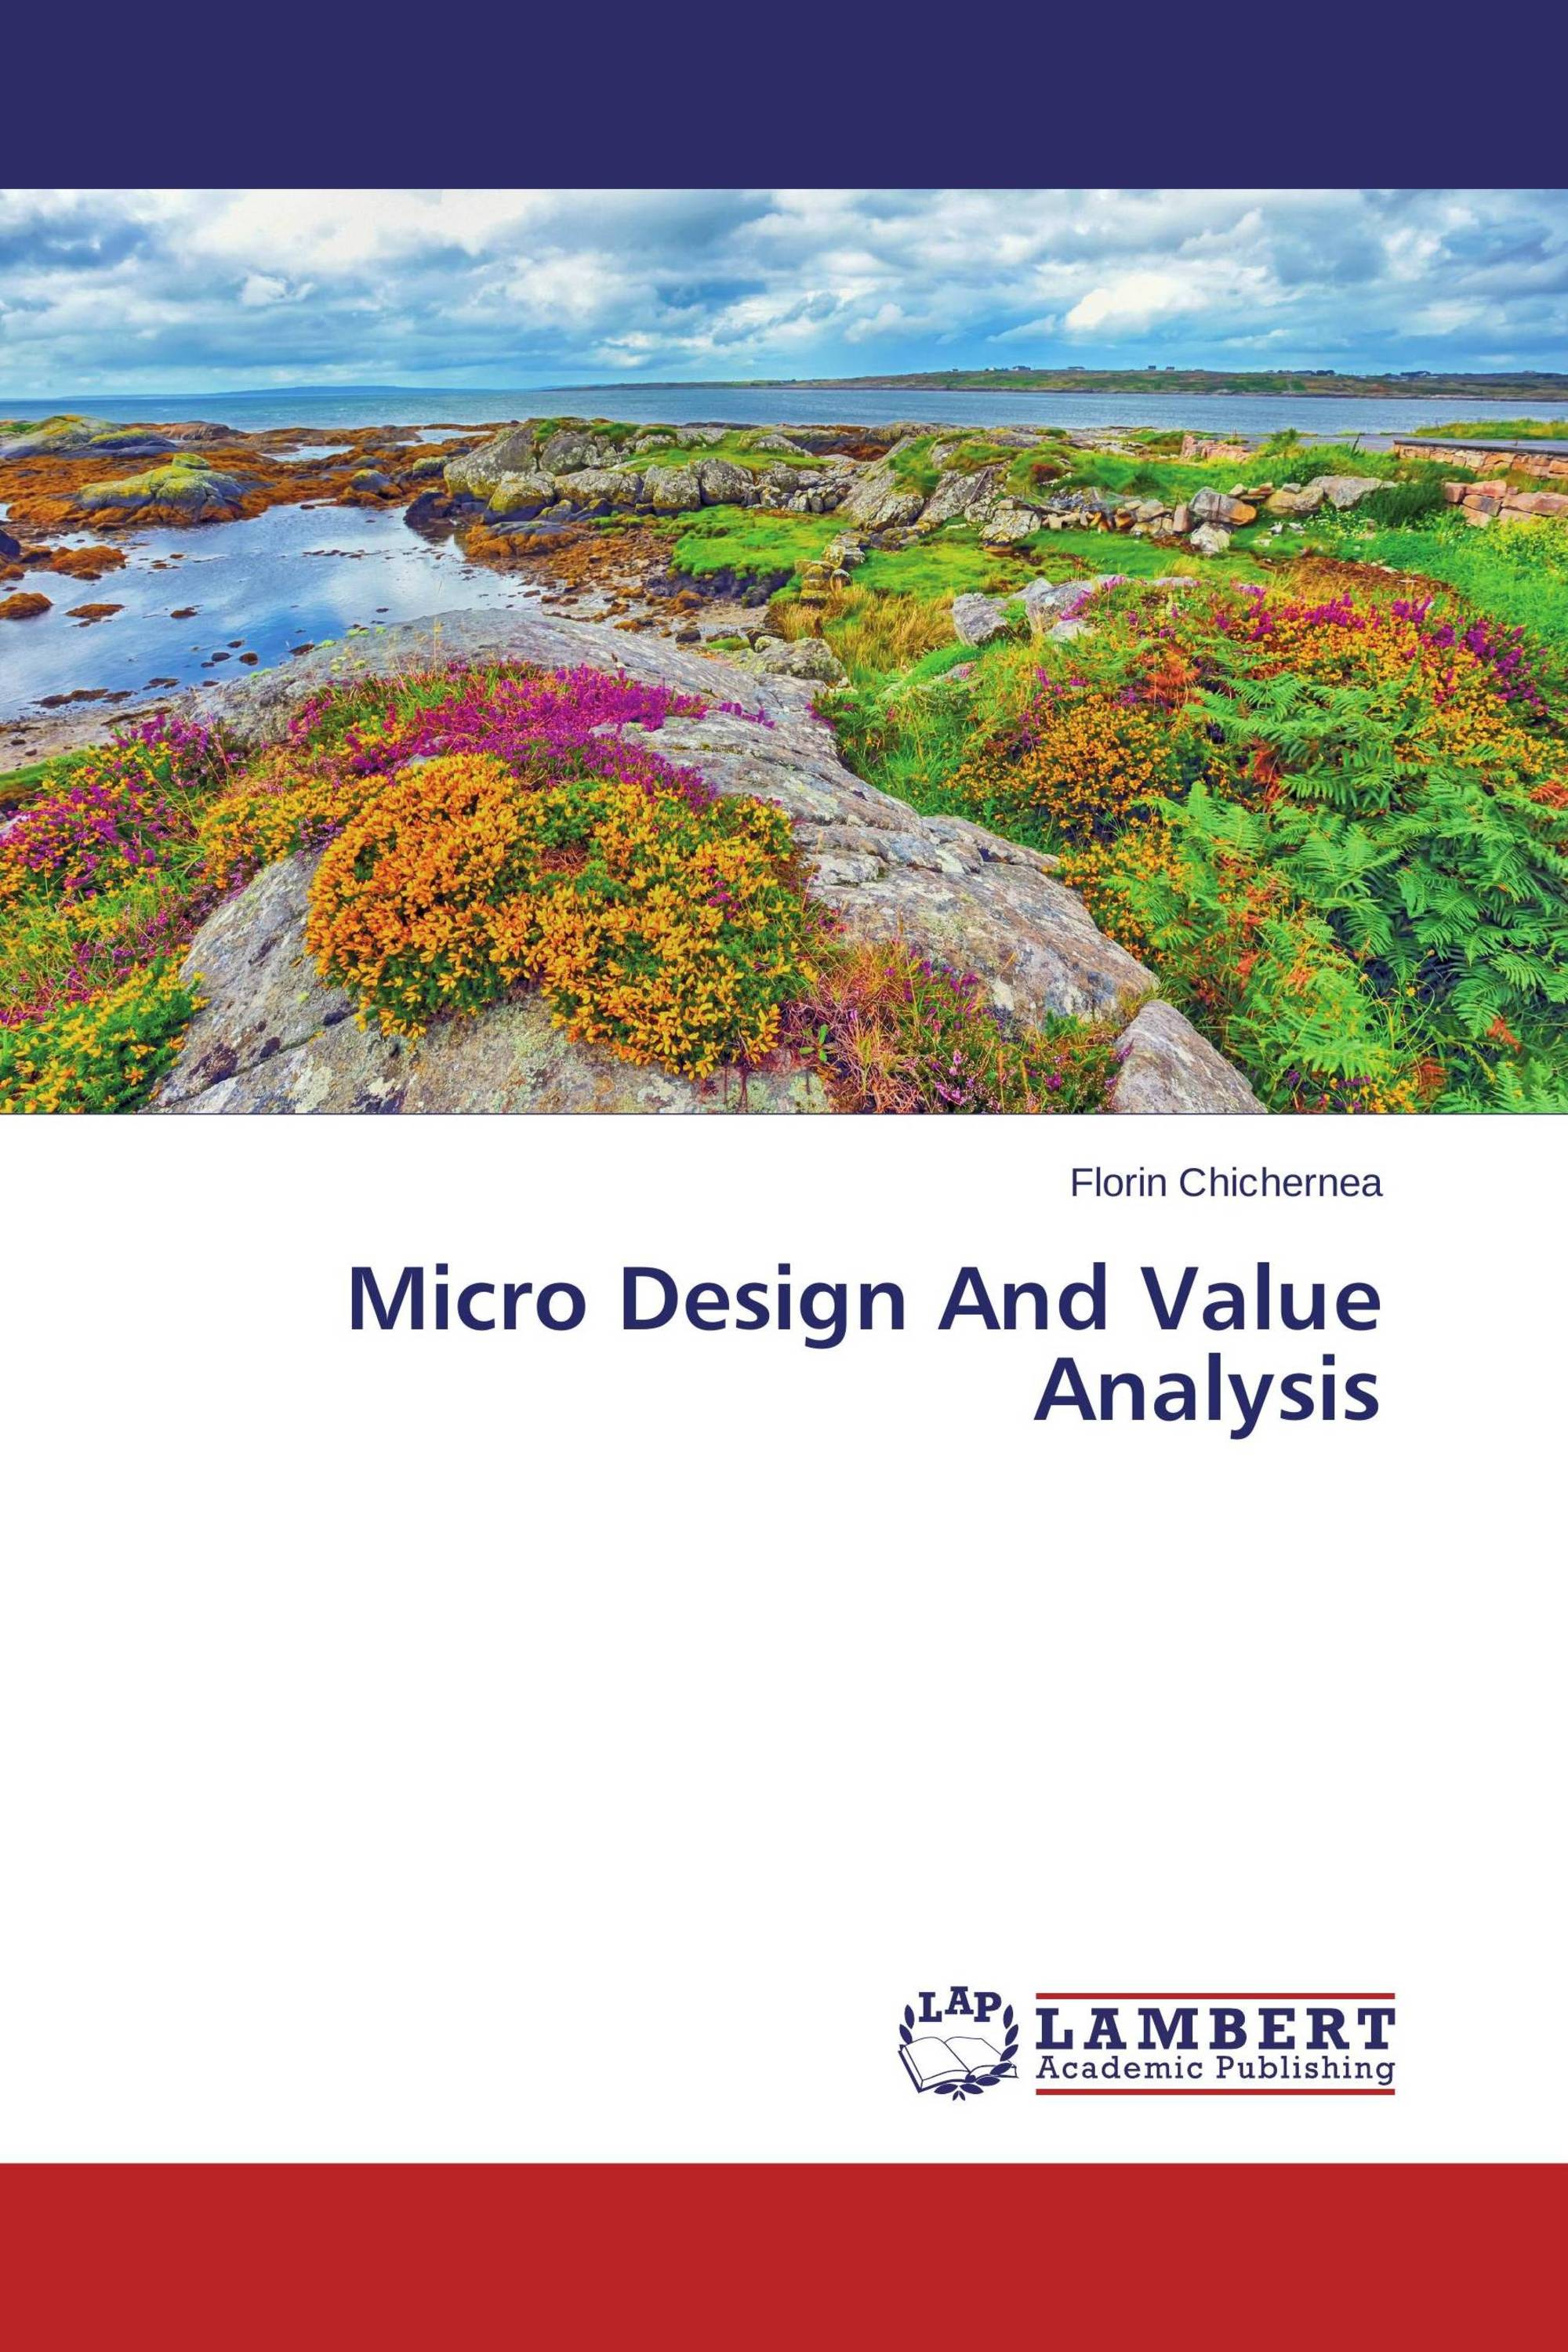 Micro Design And Value Analysis